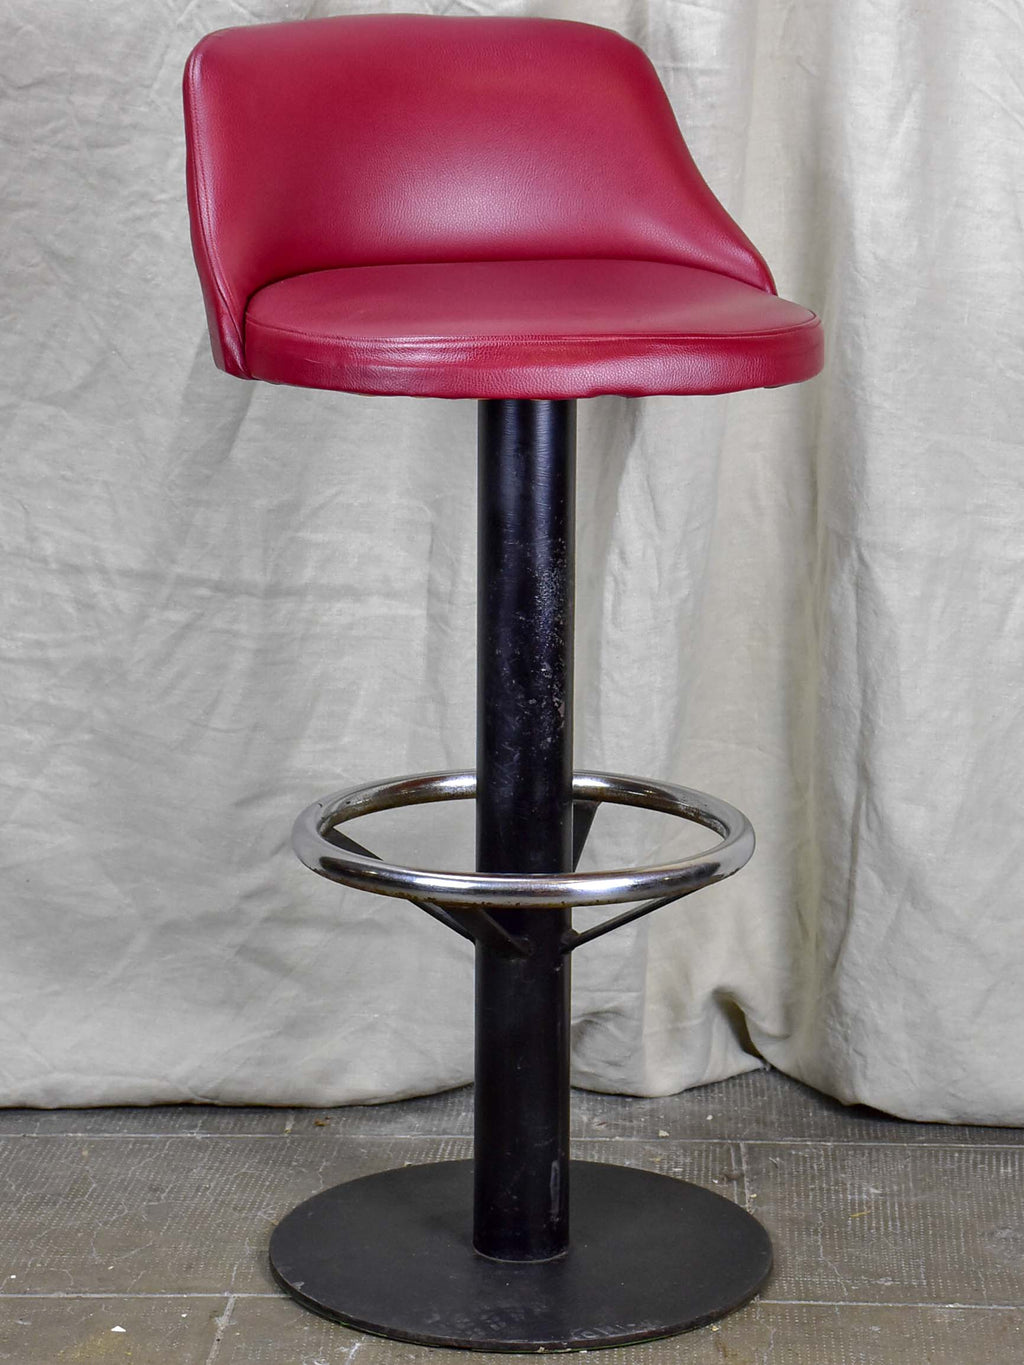 1960's French bar stools - red faux leather